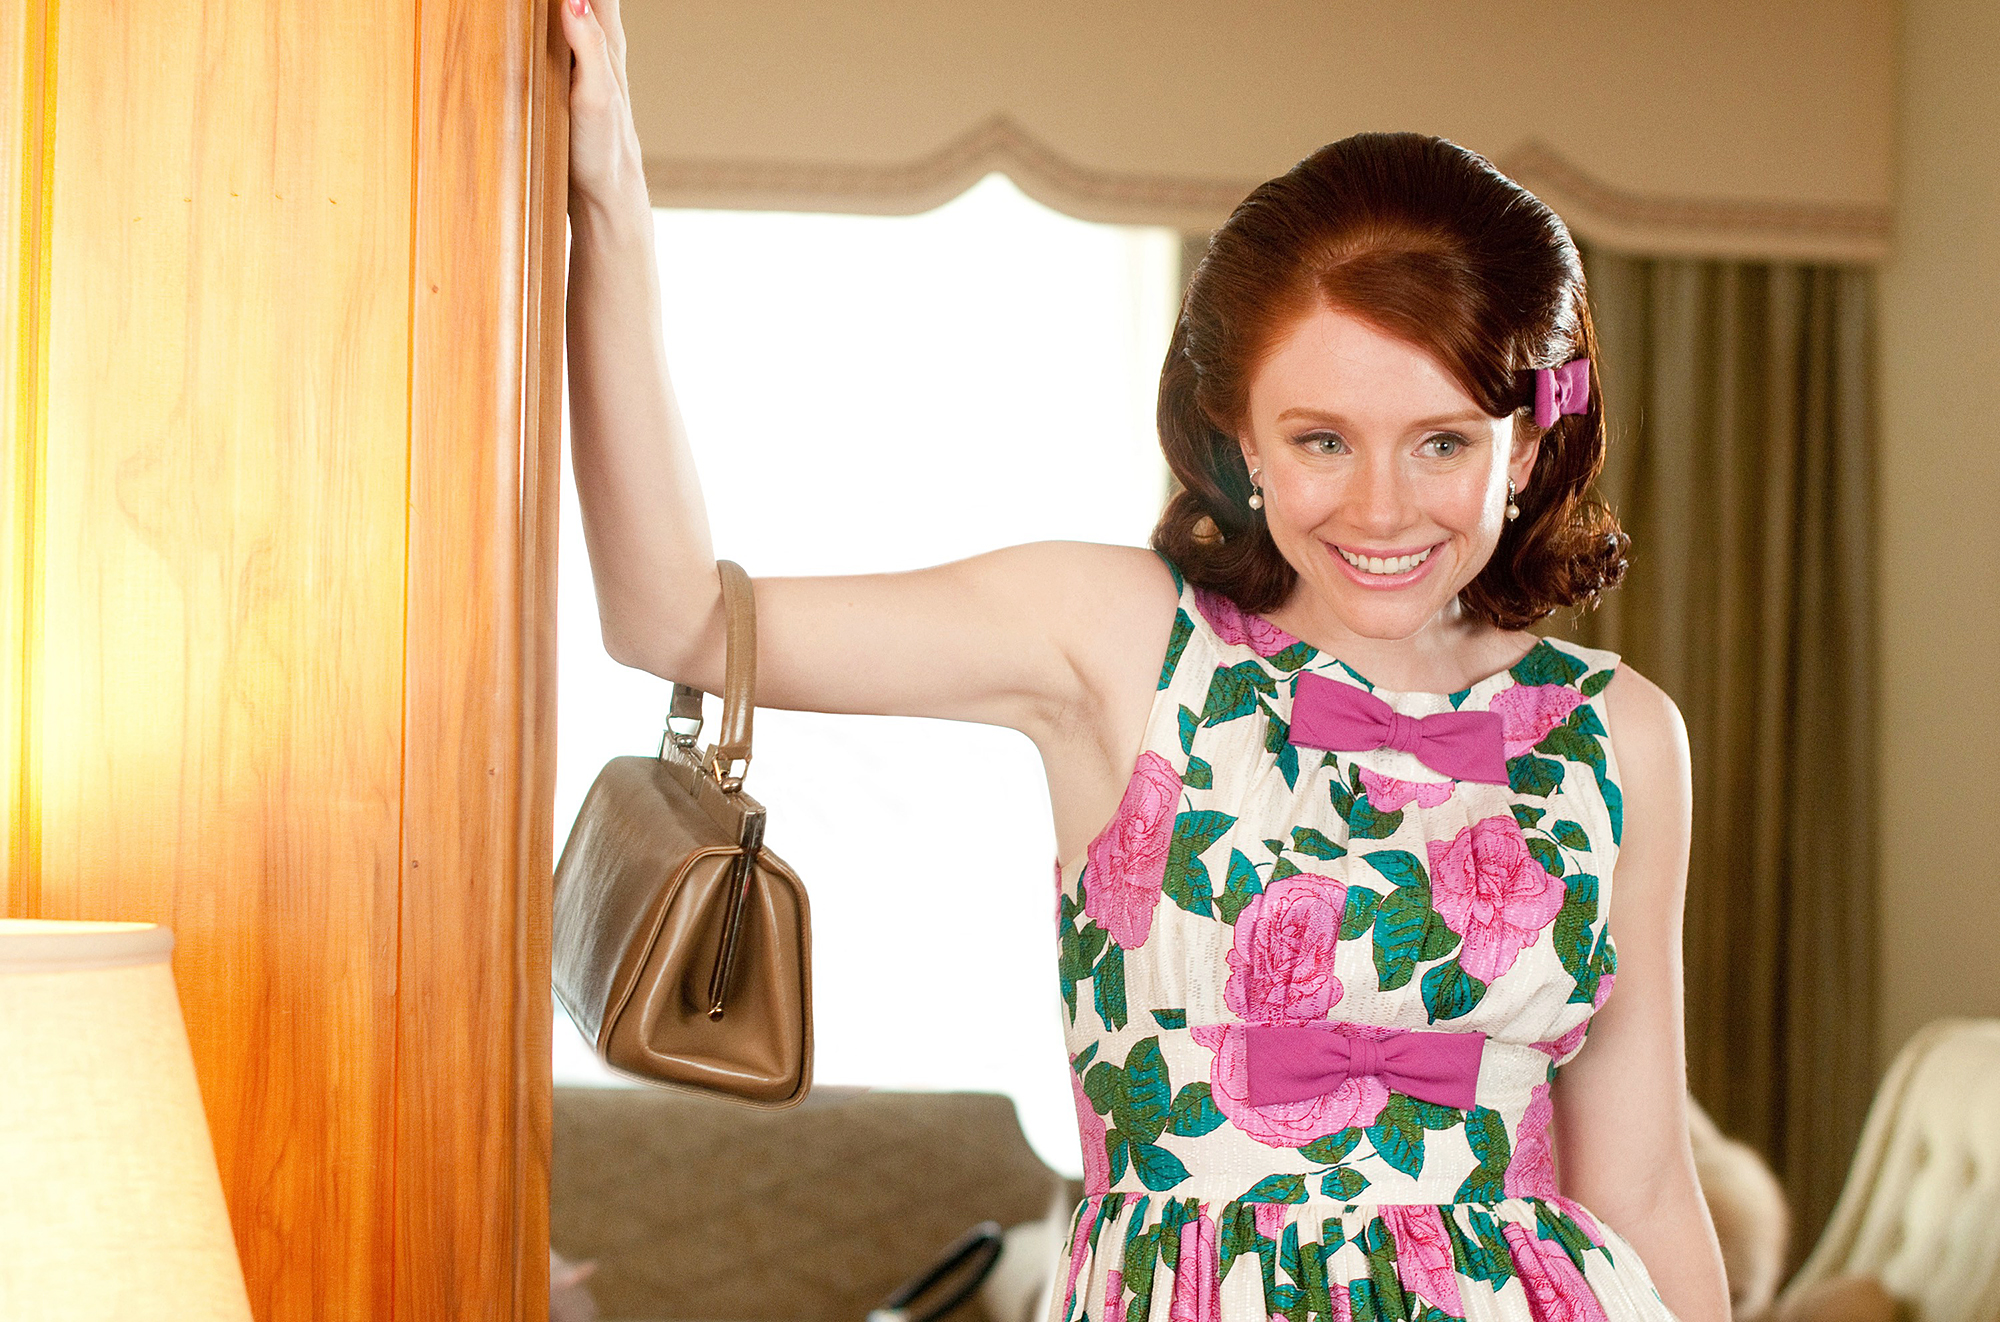 Bryce Dallas Howard in The Help Bryce Dallas Howard Says She Wouldnt Star in The Help If It Were Made Today